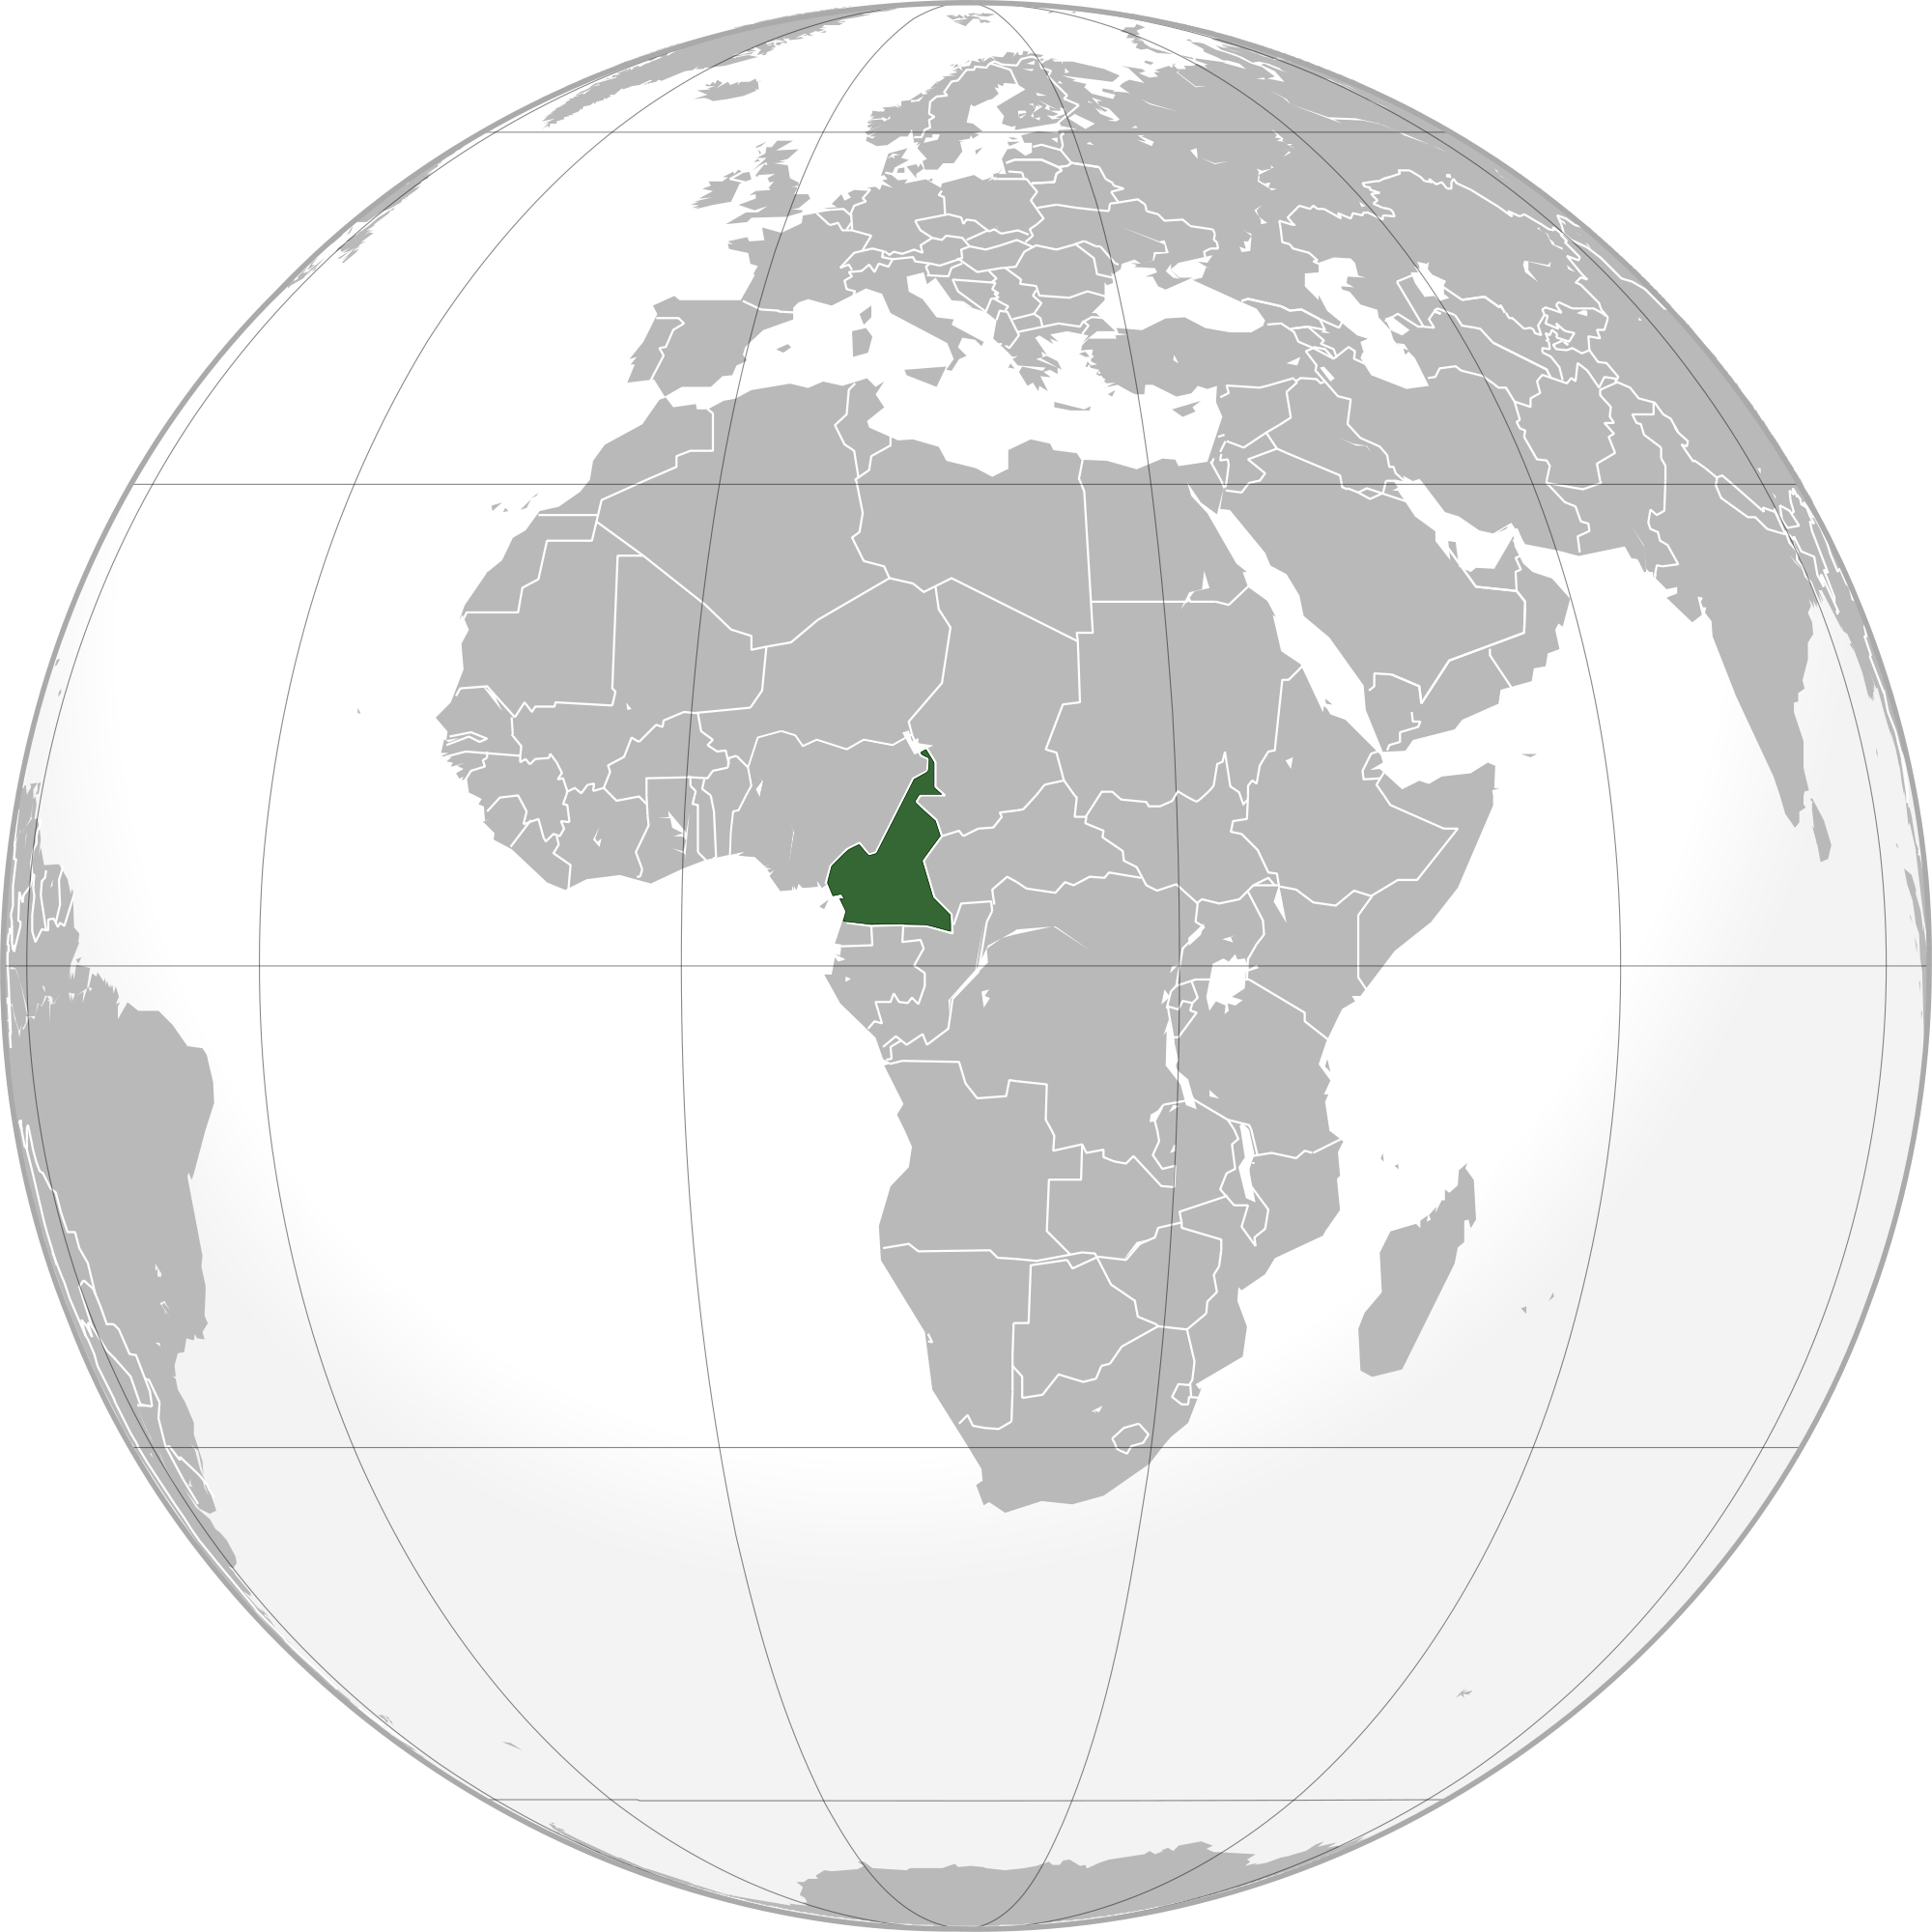 Location of the Cameroon in the World Map